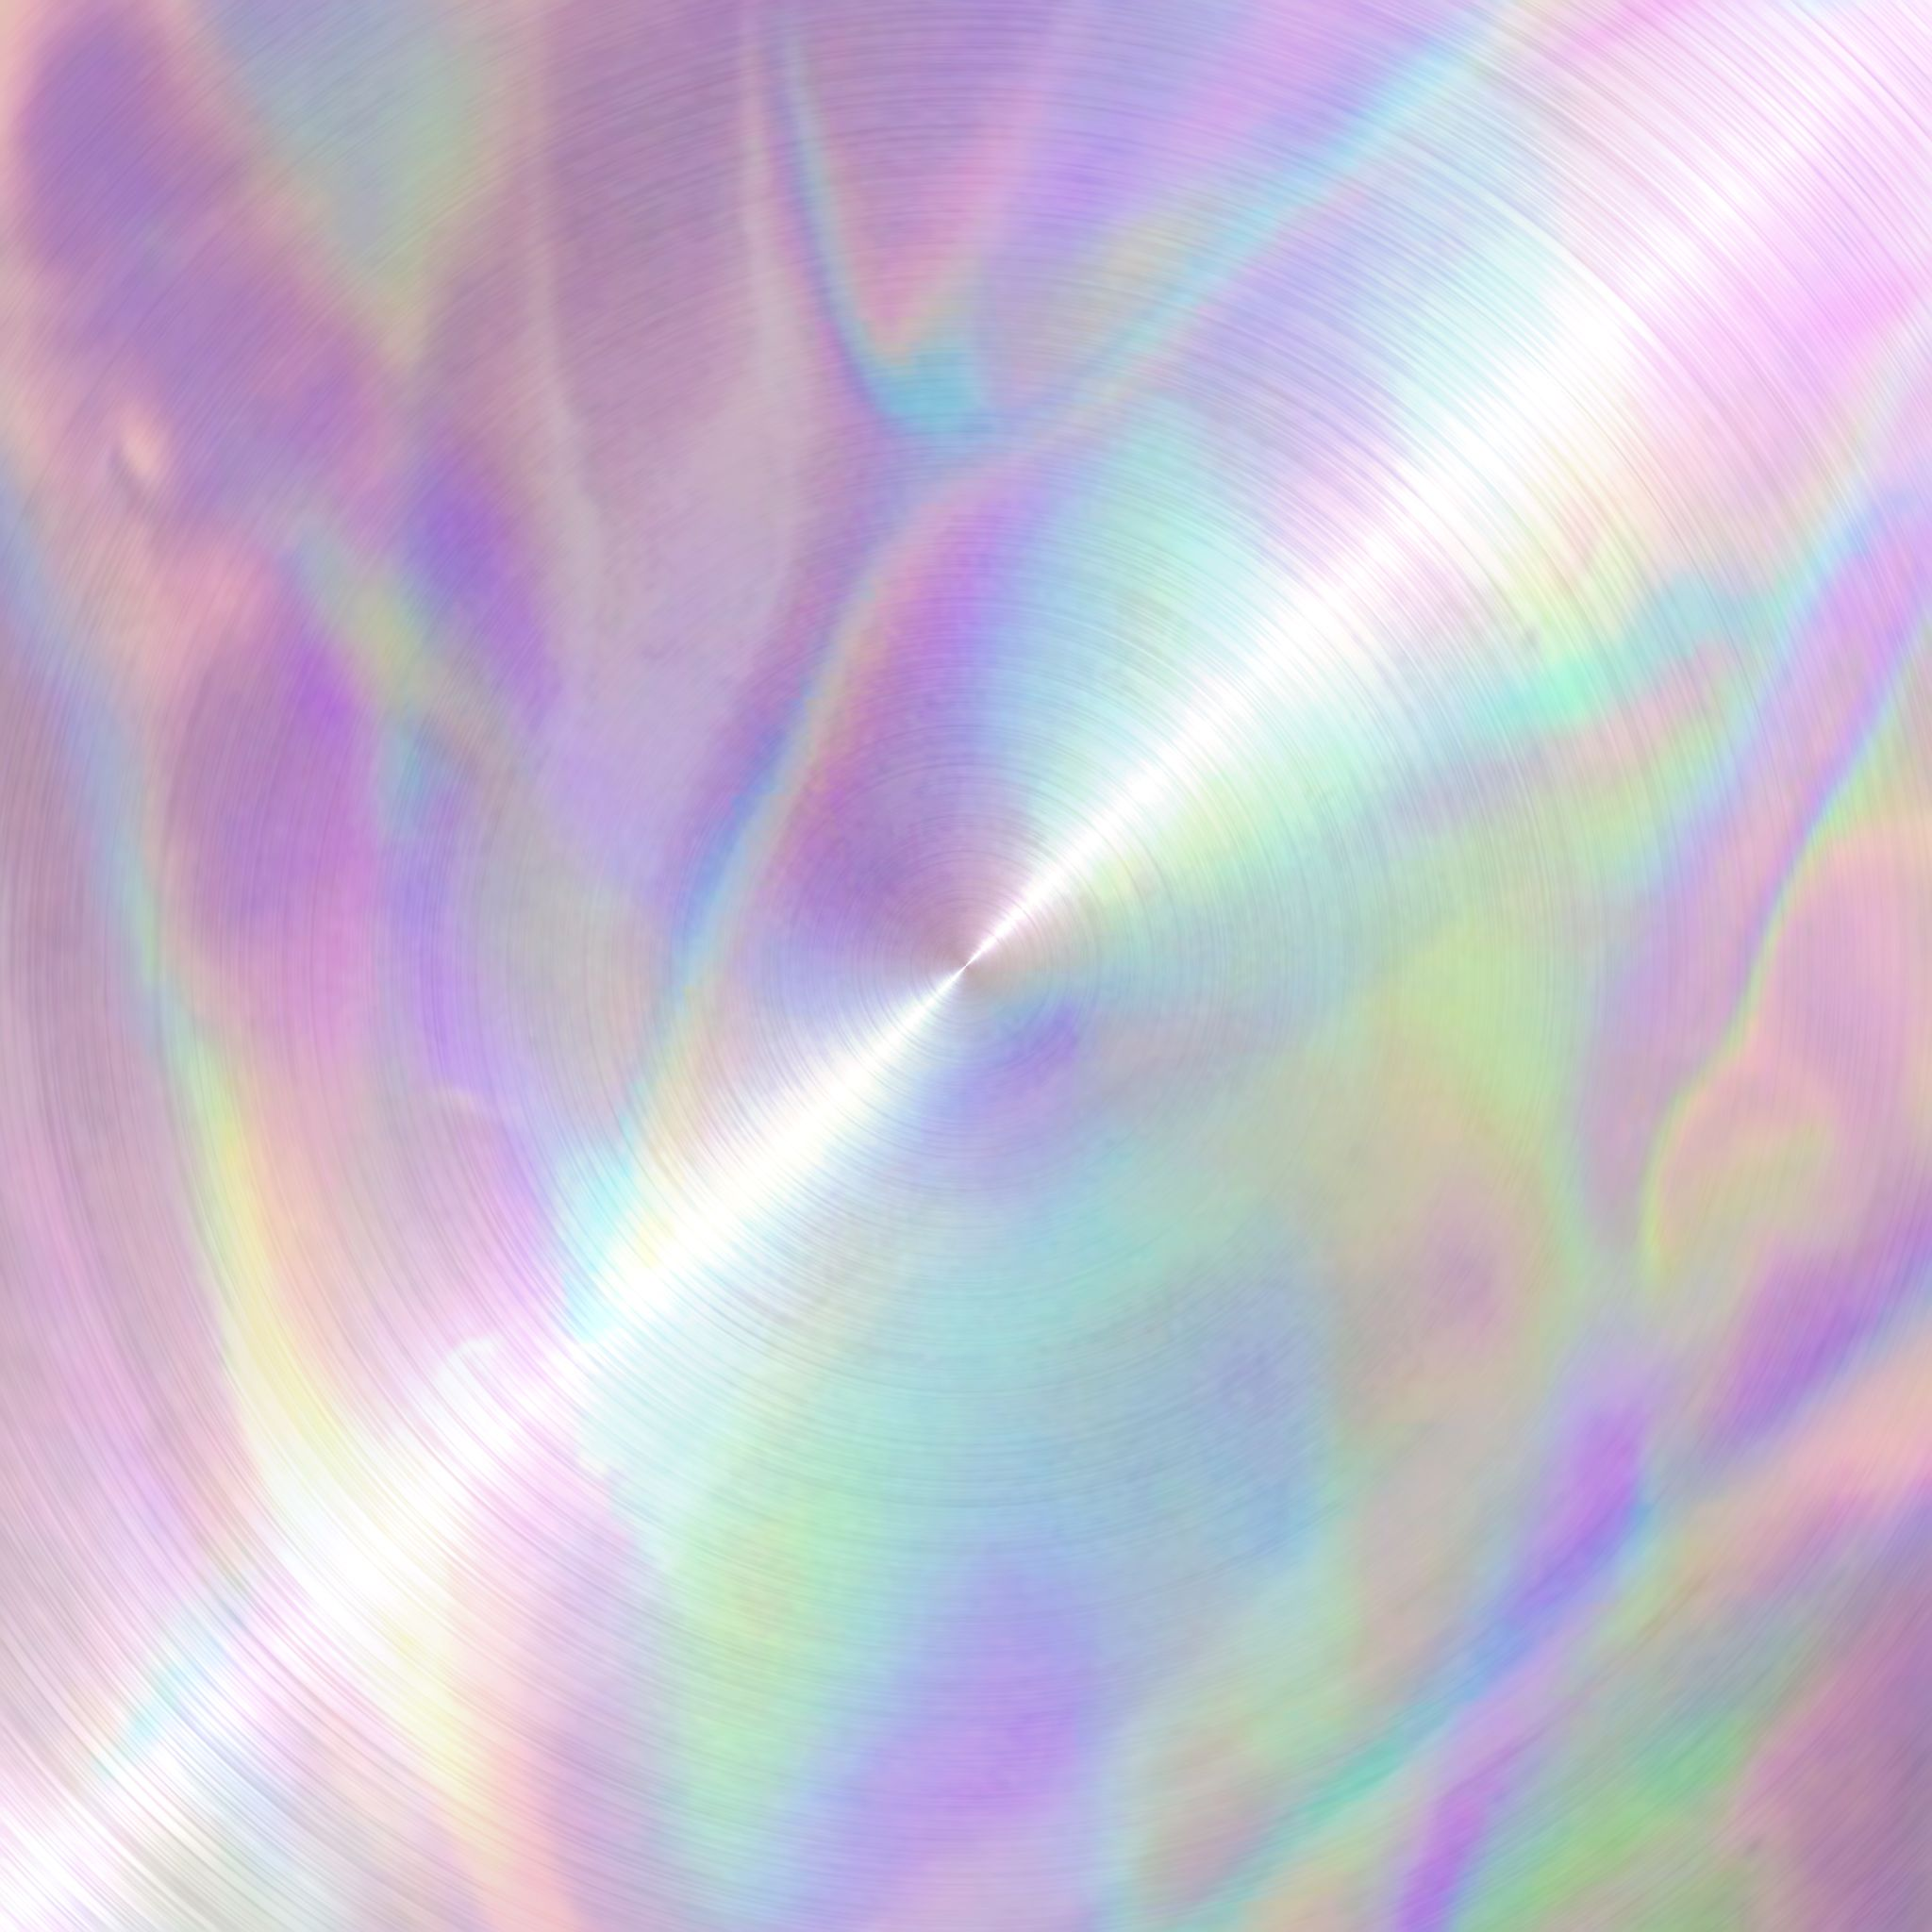 Iridescent Holographic Radial Metal Texture 2 Metal Texture Textured Background Colorful Wallpaper